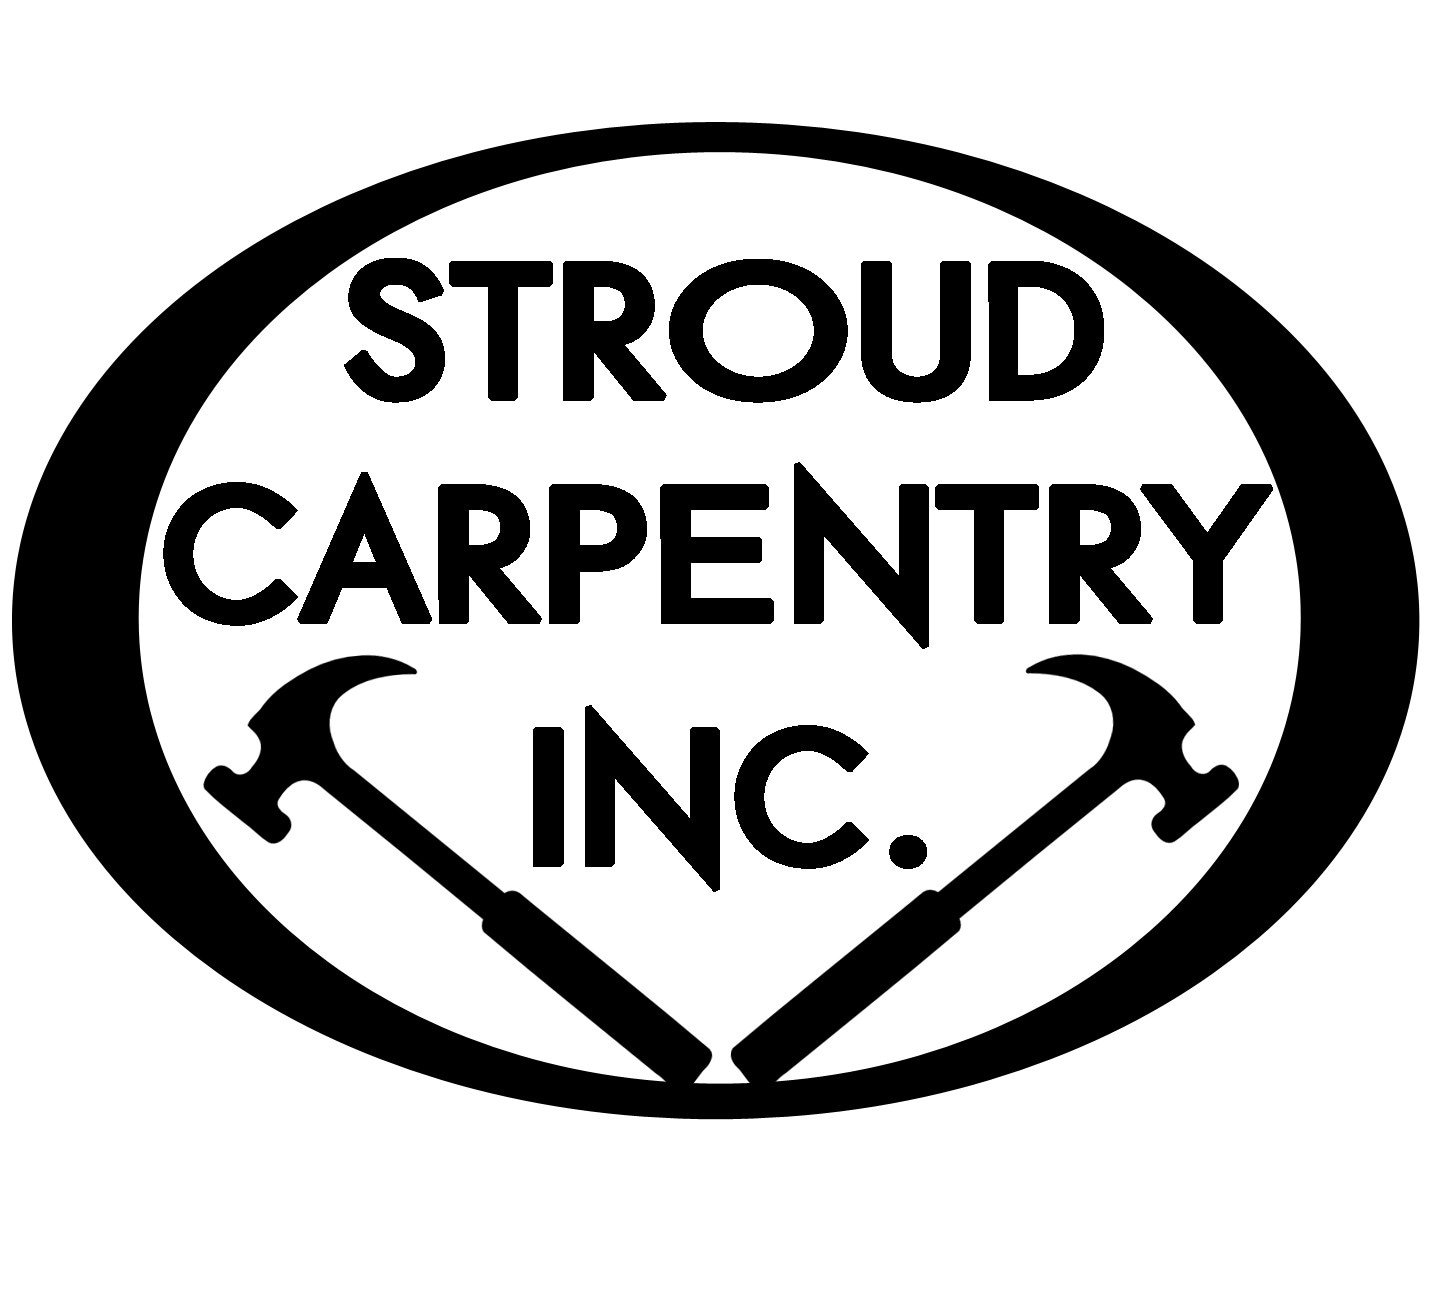 Stroud Carpentry Inc.